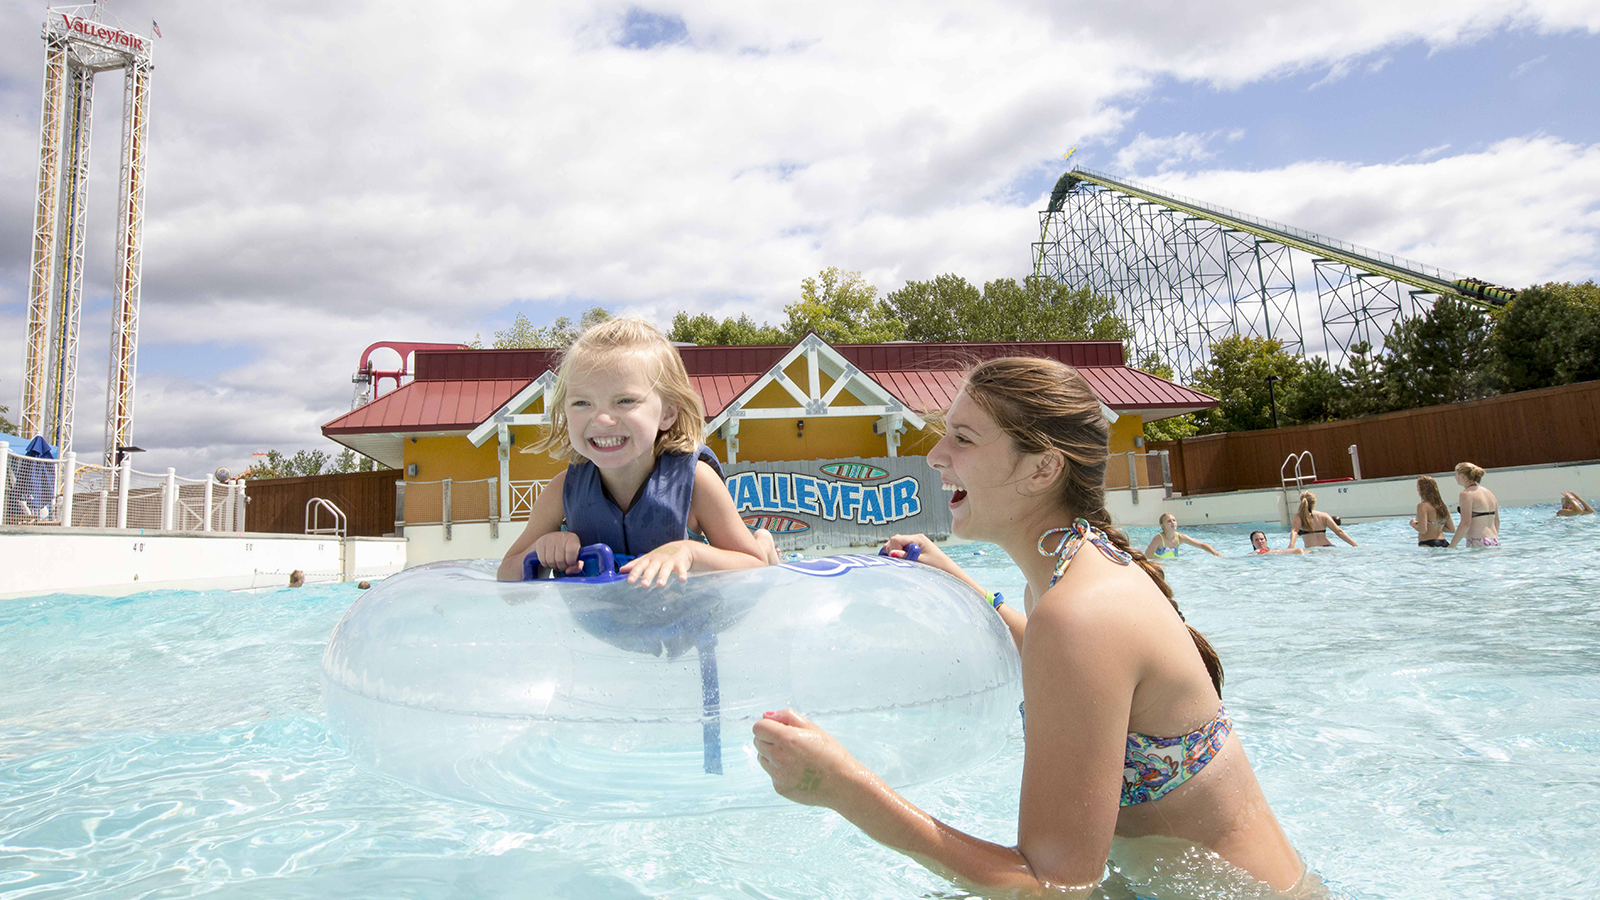 Visit Shakopee Itinerary: A Day of Family Fun at Valleyfair